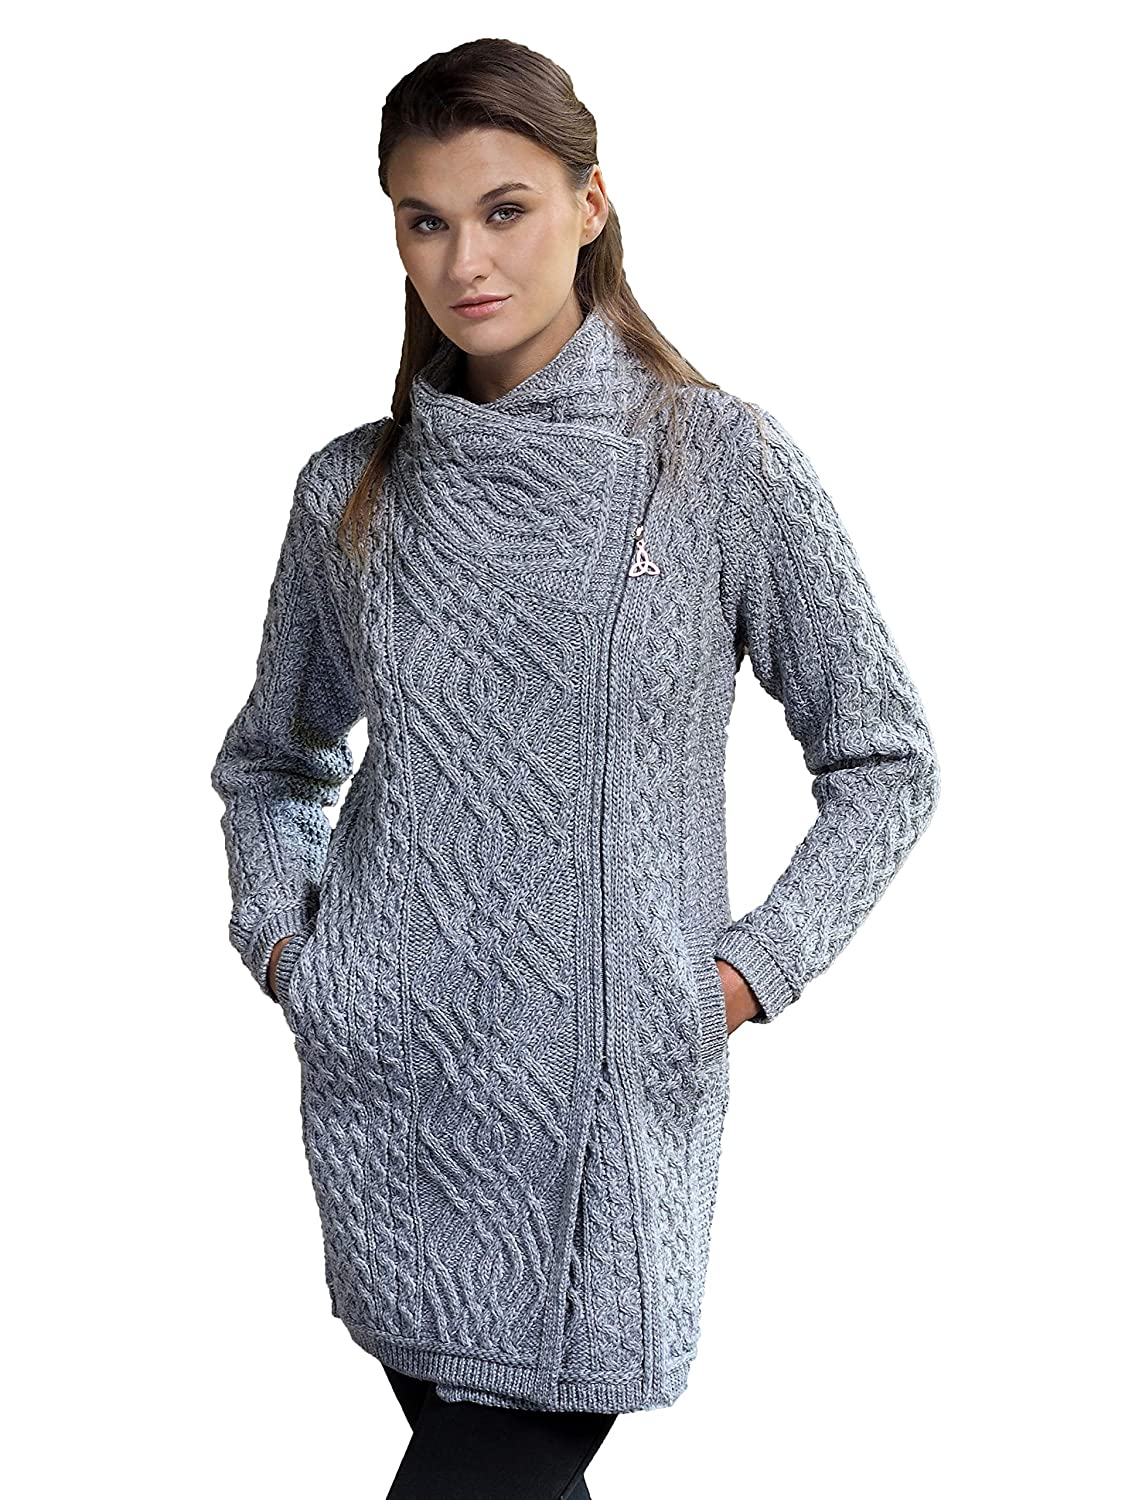 Soft Grey Aran Crafts Cable Knit Side Zip Coat (100% Merino Wool) in Wine, Grey, Army Green Colours